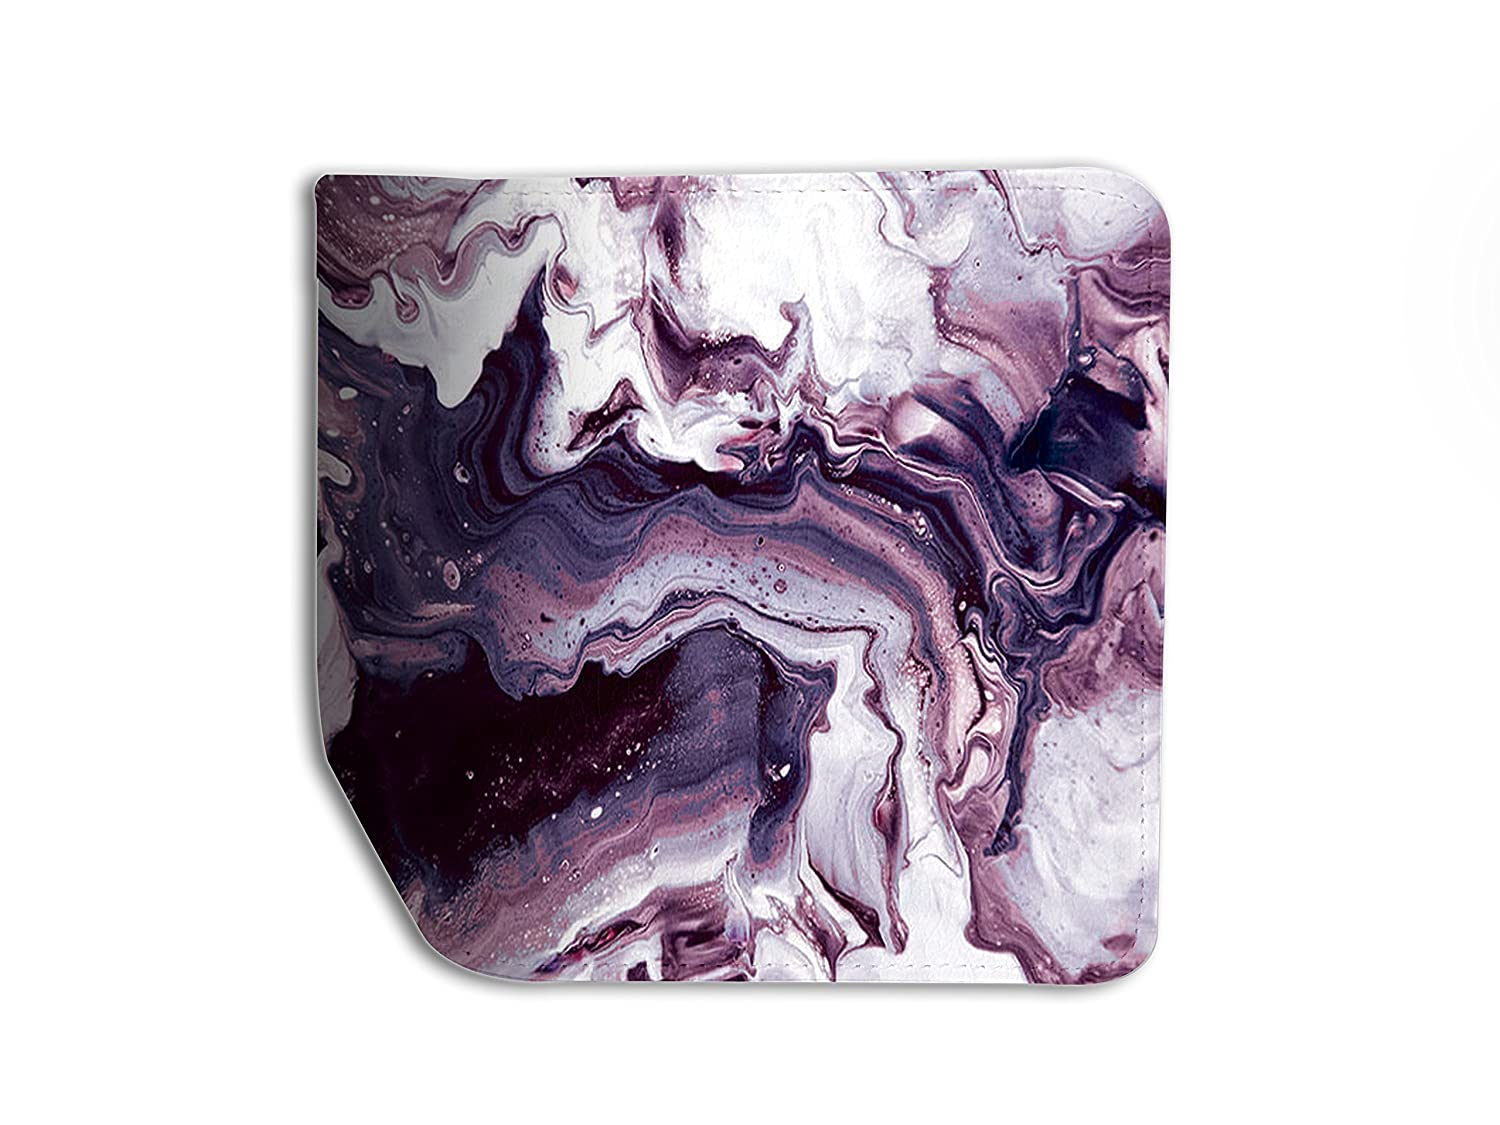 Marble Granite Pattern Leather Passport Holder Protector Cover/_SUPERTRAMPshop